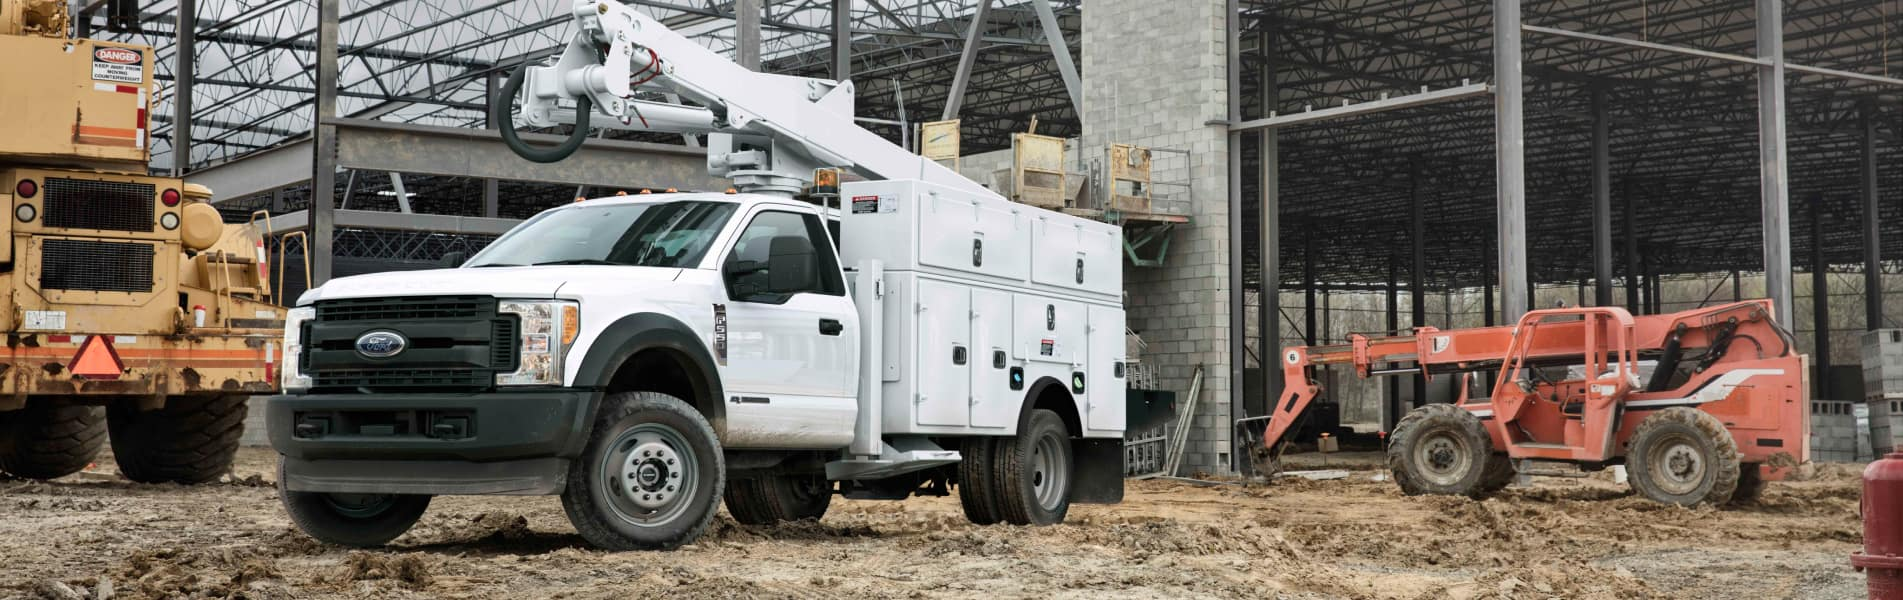 The 2019 Ford F-350 available at Sutton Ford Commercial Truck Center near Oak Forest, IL